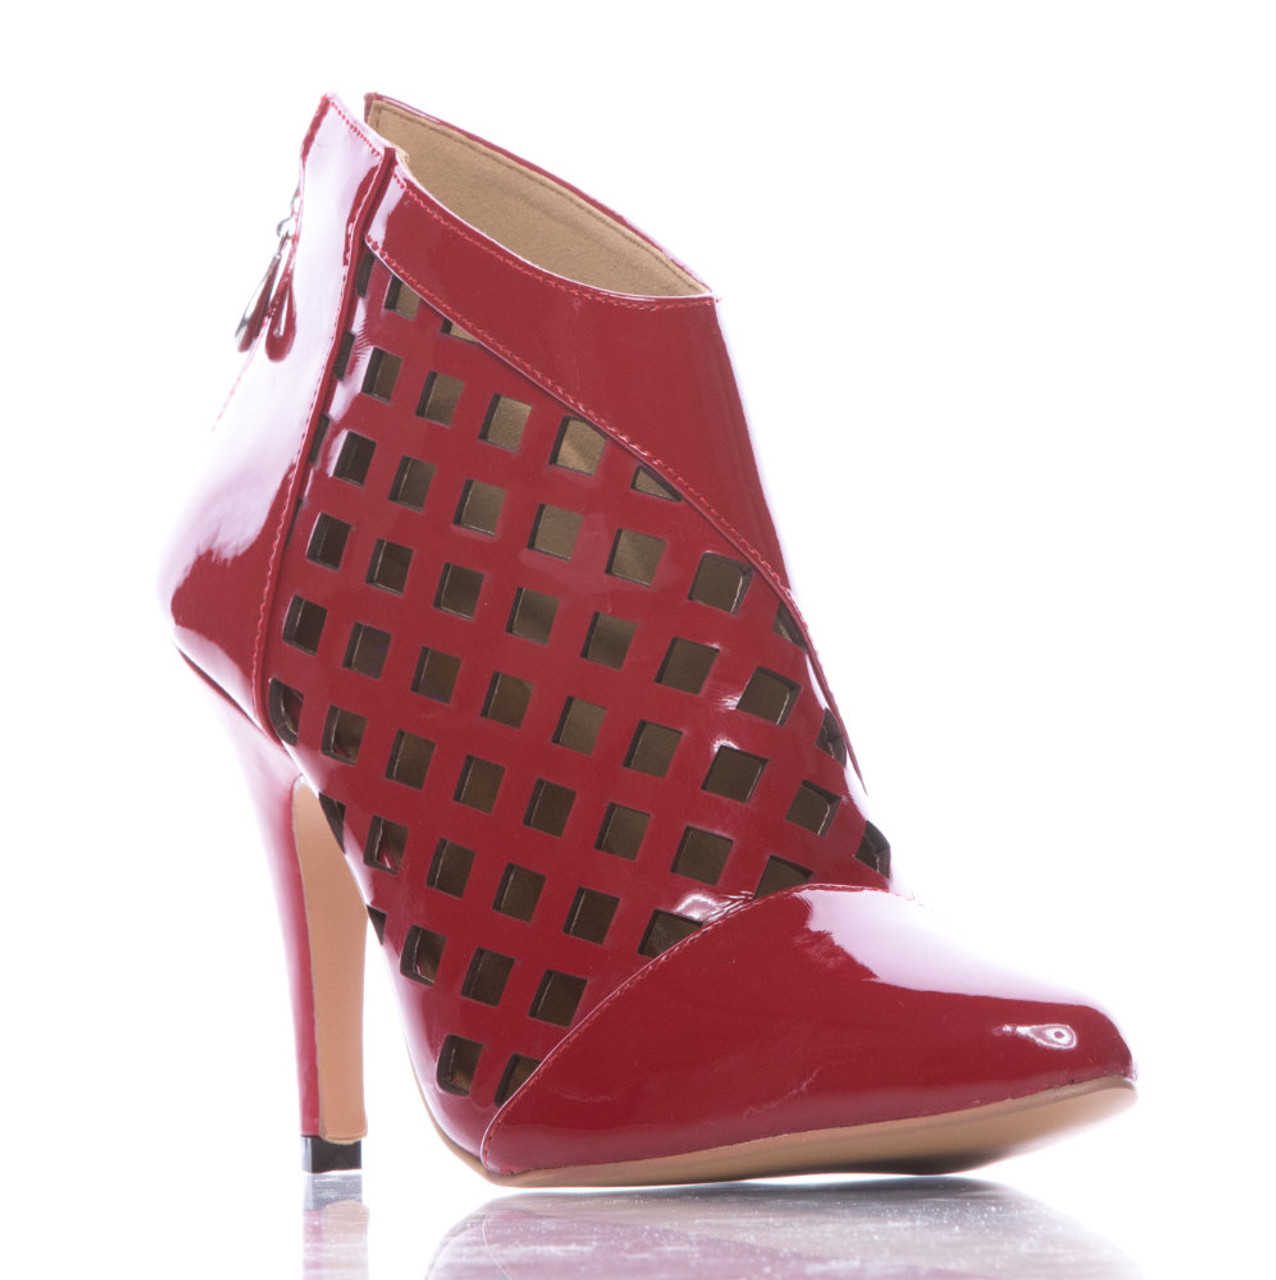 05296d5567c Melissa Mitro - Red Pointed Toe Cutout Stiletto Bootie - 4 inch Heels